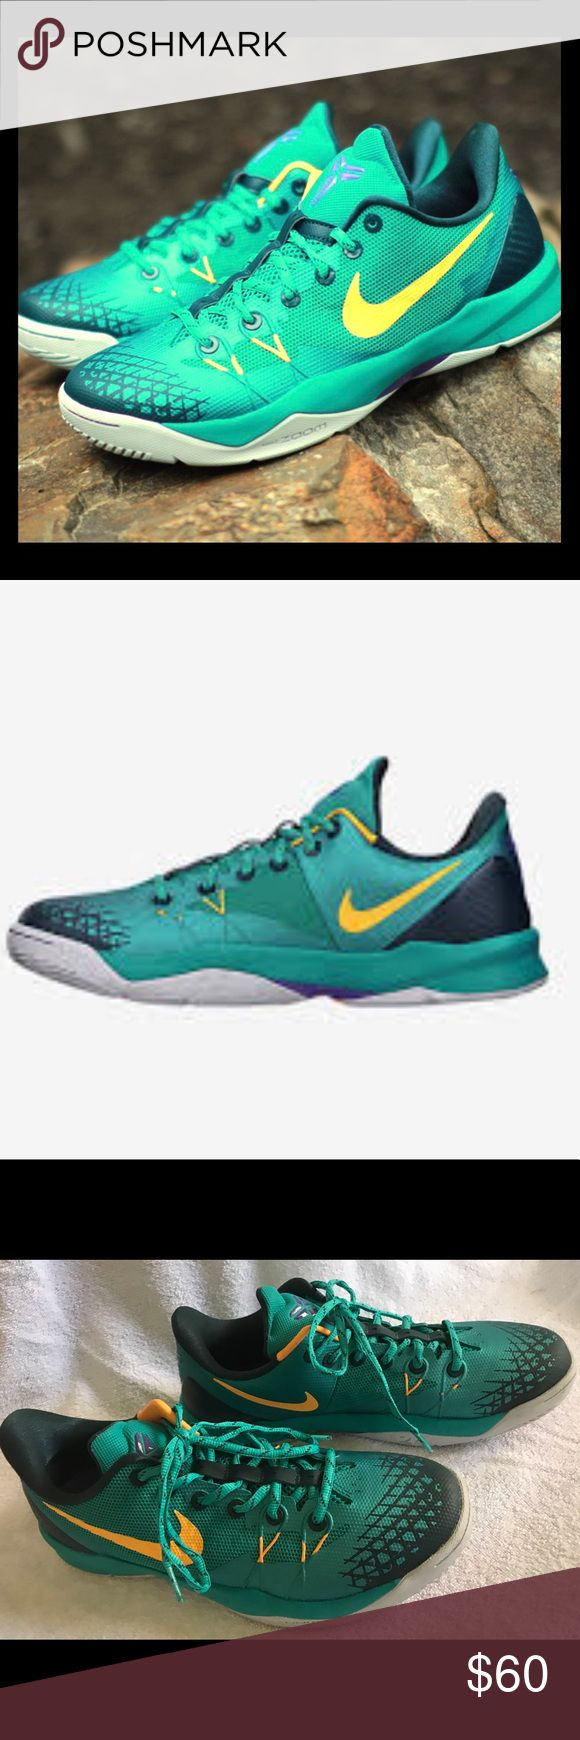 Nike Zoom Venomenon Basketball Shoe Xtra durable for outdoor game. The signature shoe of all-time basketball great Kobe Bryant. My daughter used it once for indoor volleyball and they ended up being to big, so her loss is your gain! Nike Shoes Athletic Shoes